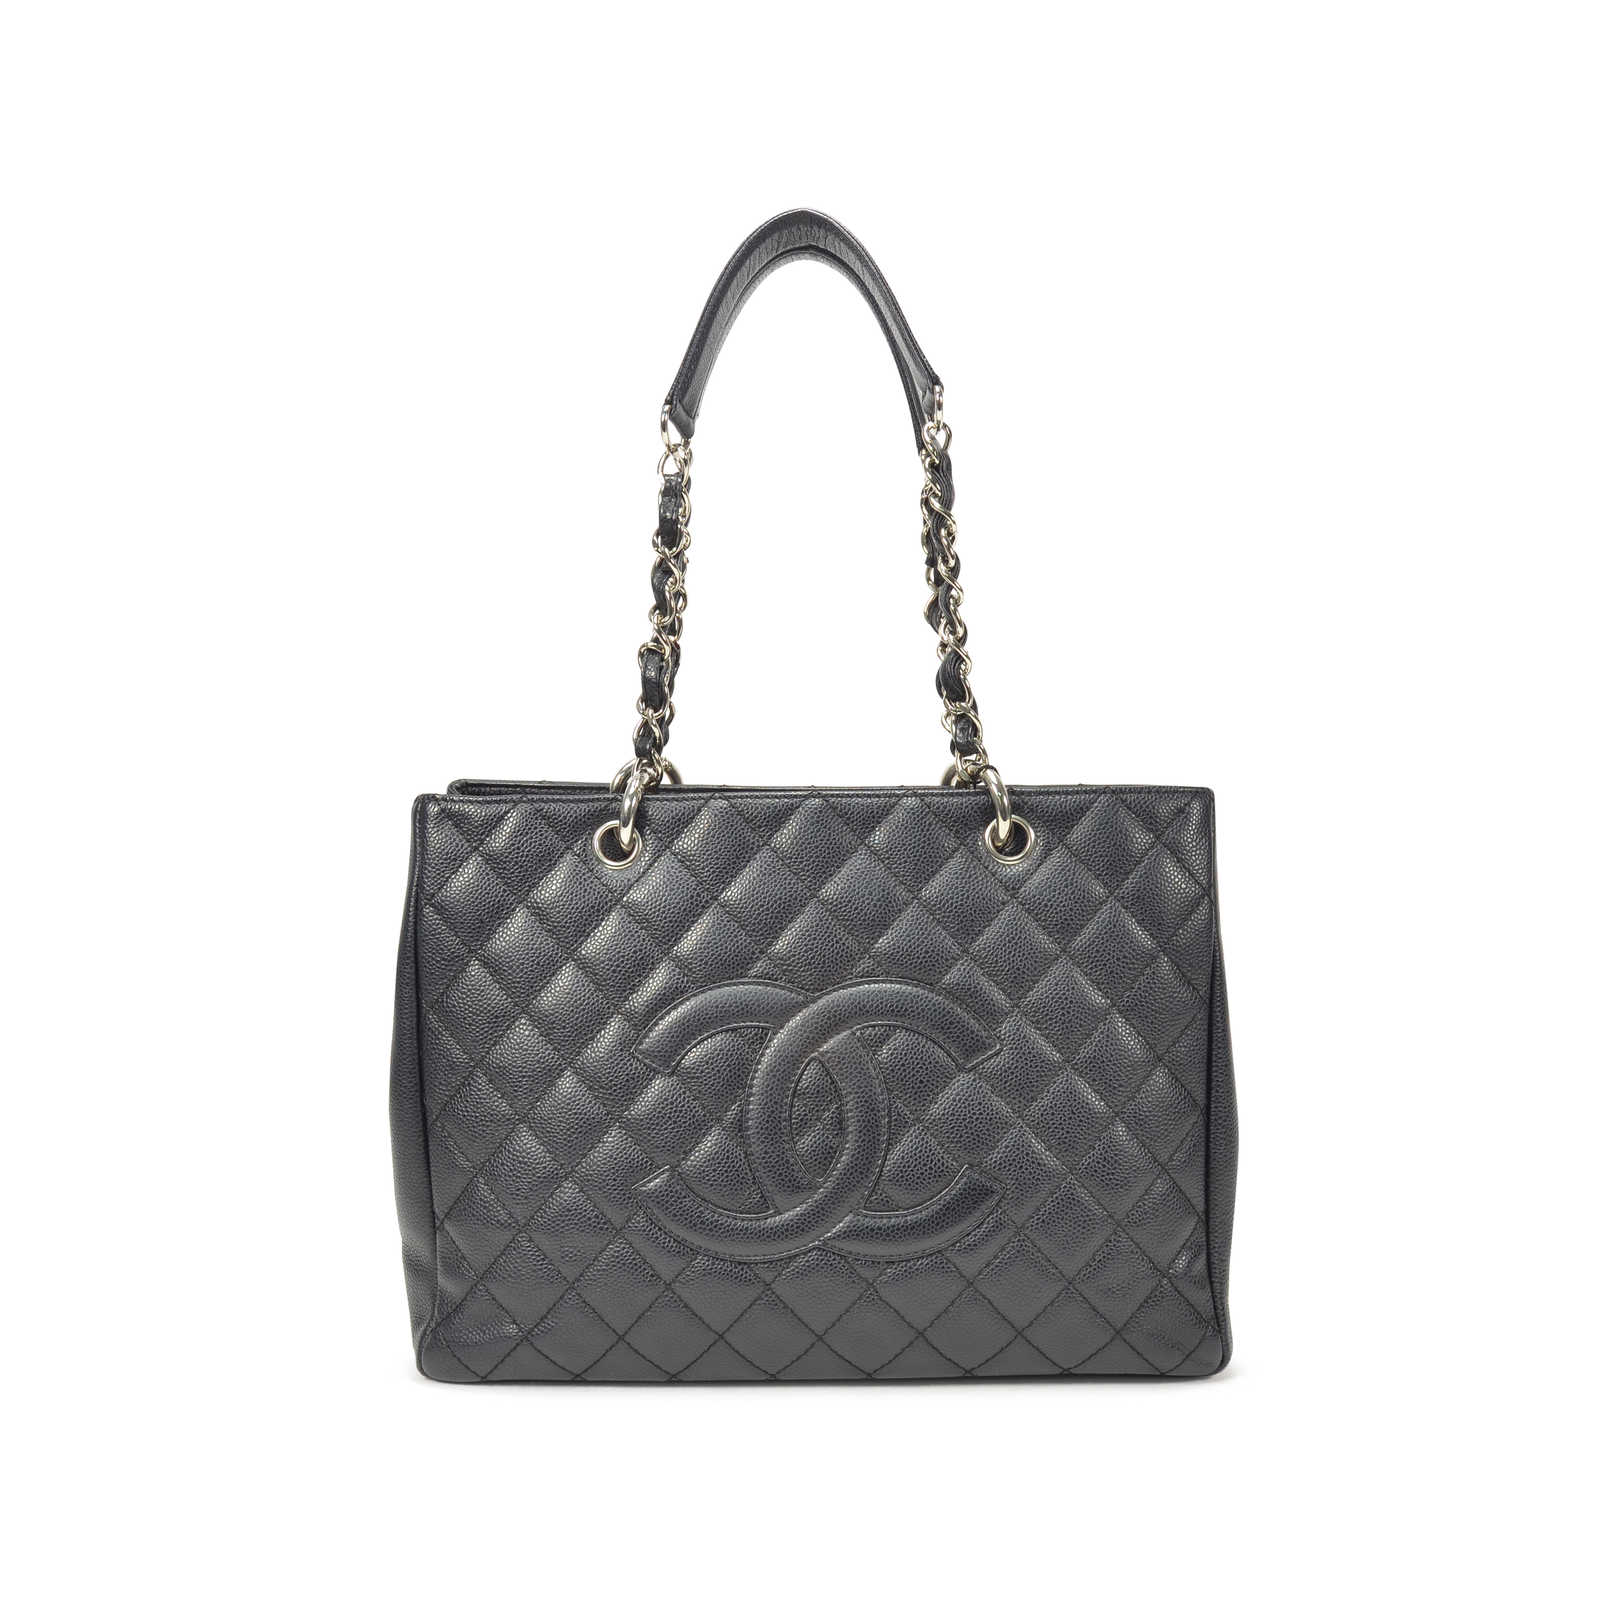 Authentic Second Hand Chanel Black Grand Shopping Tote Bag Pss 236 00018 The Fifth Collection